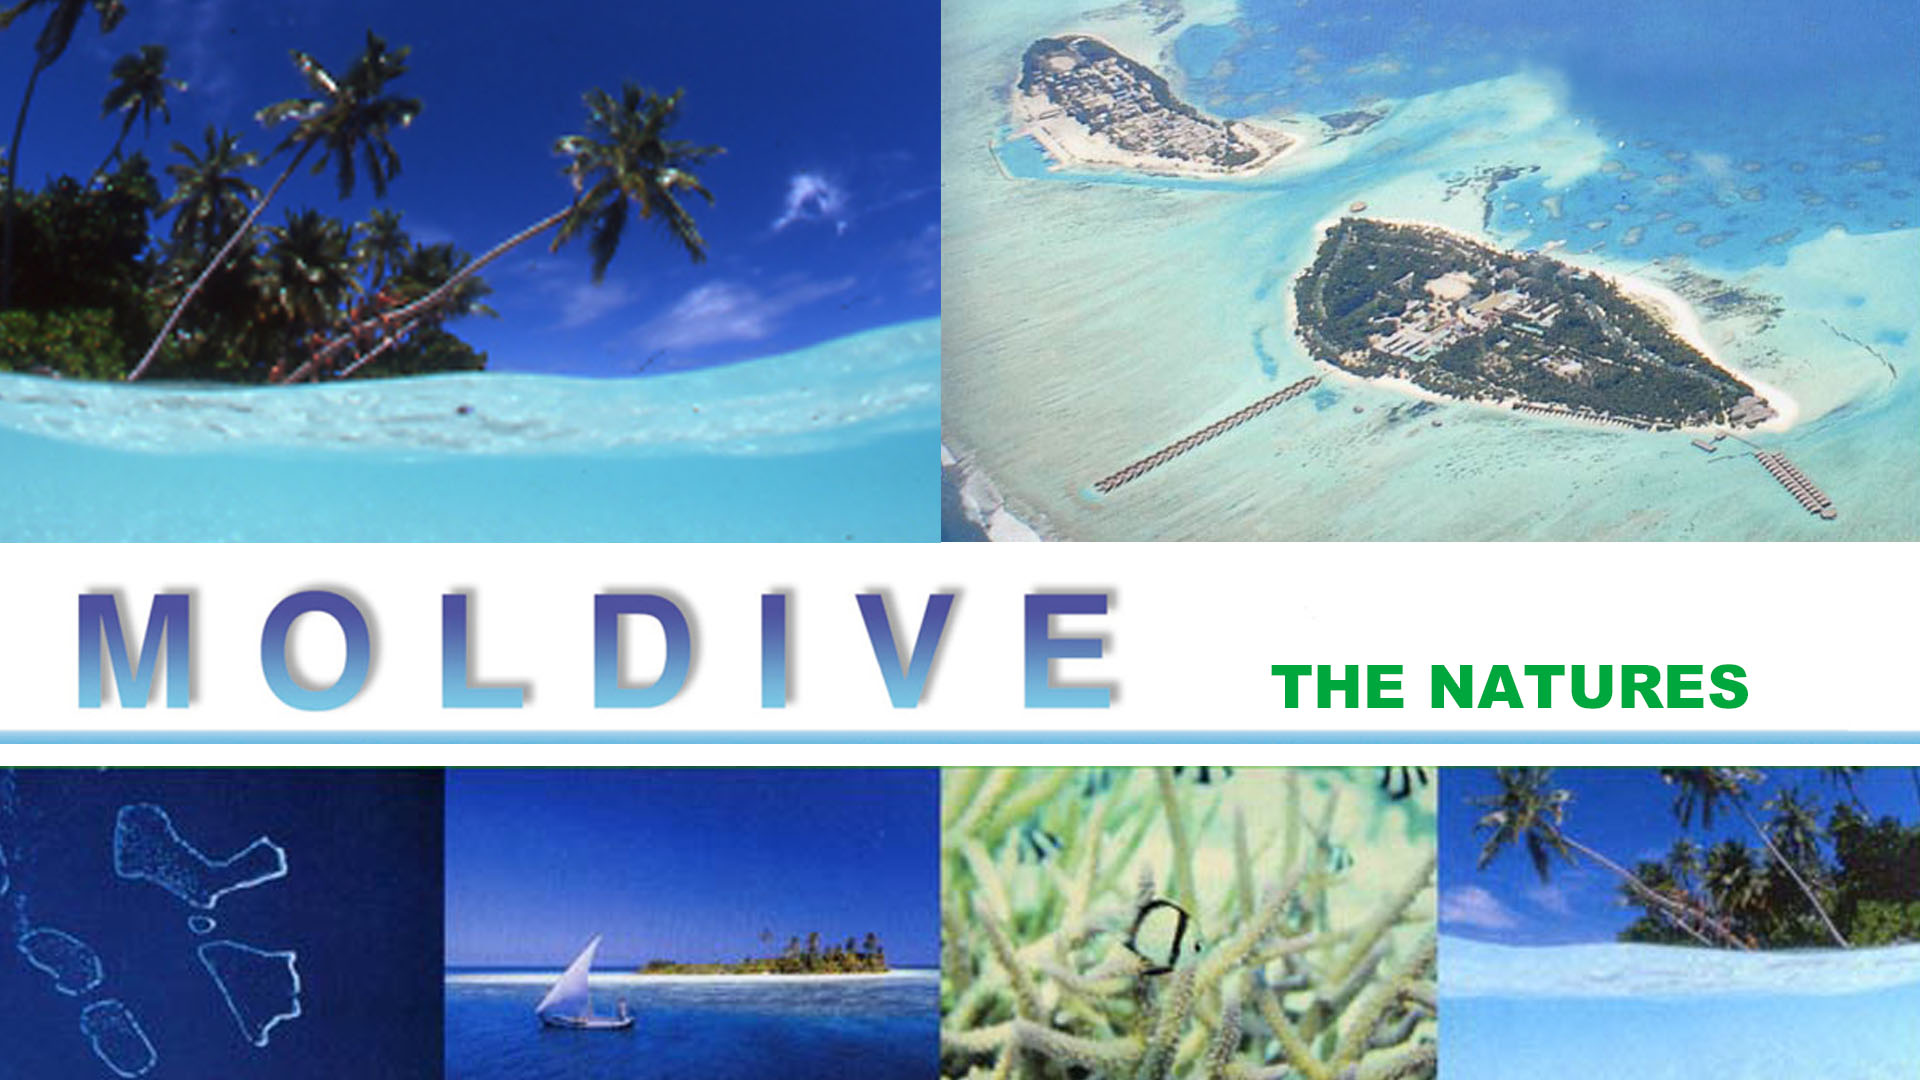 Moldive The Natures